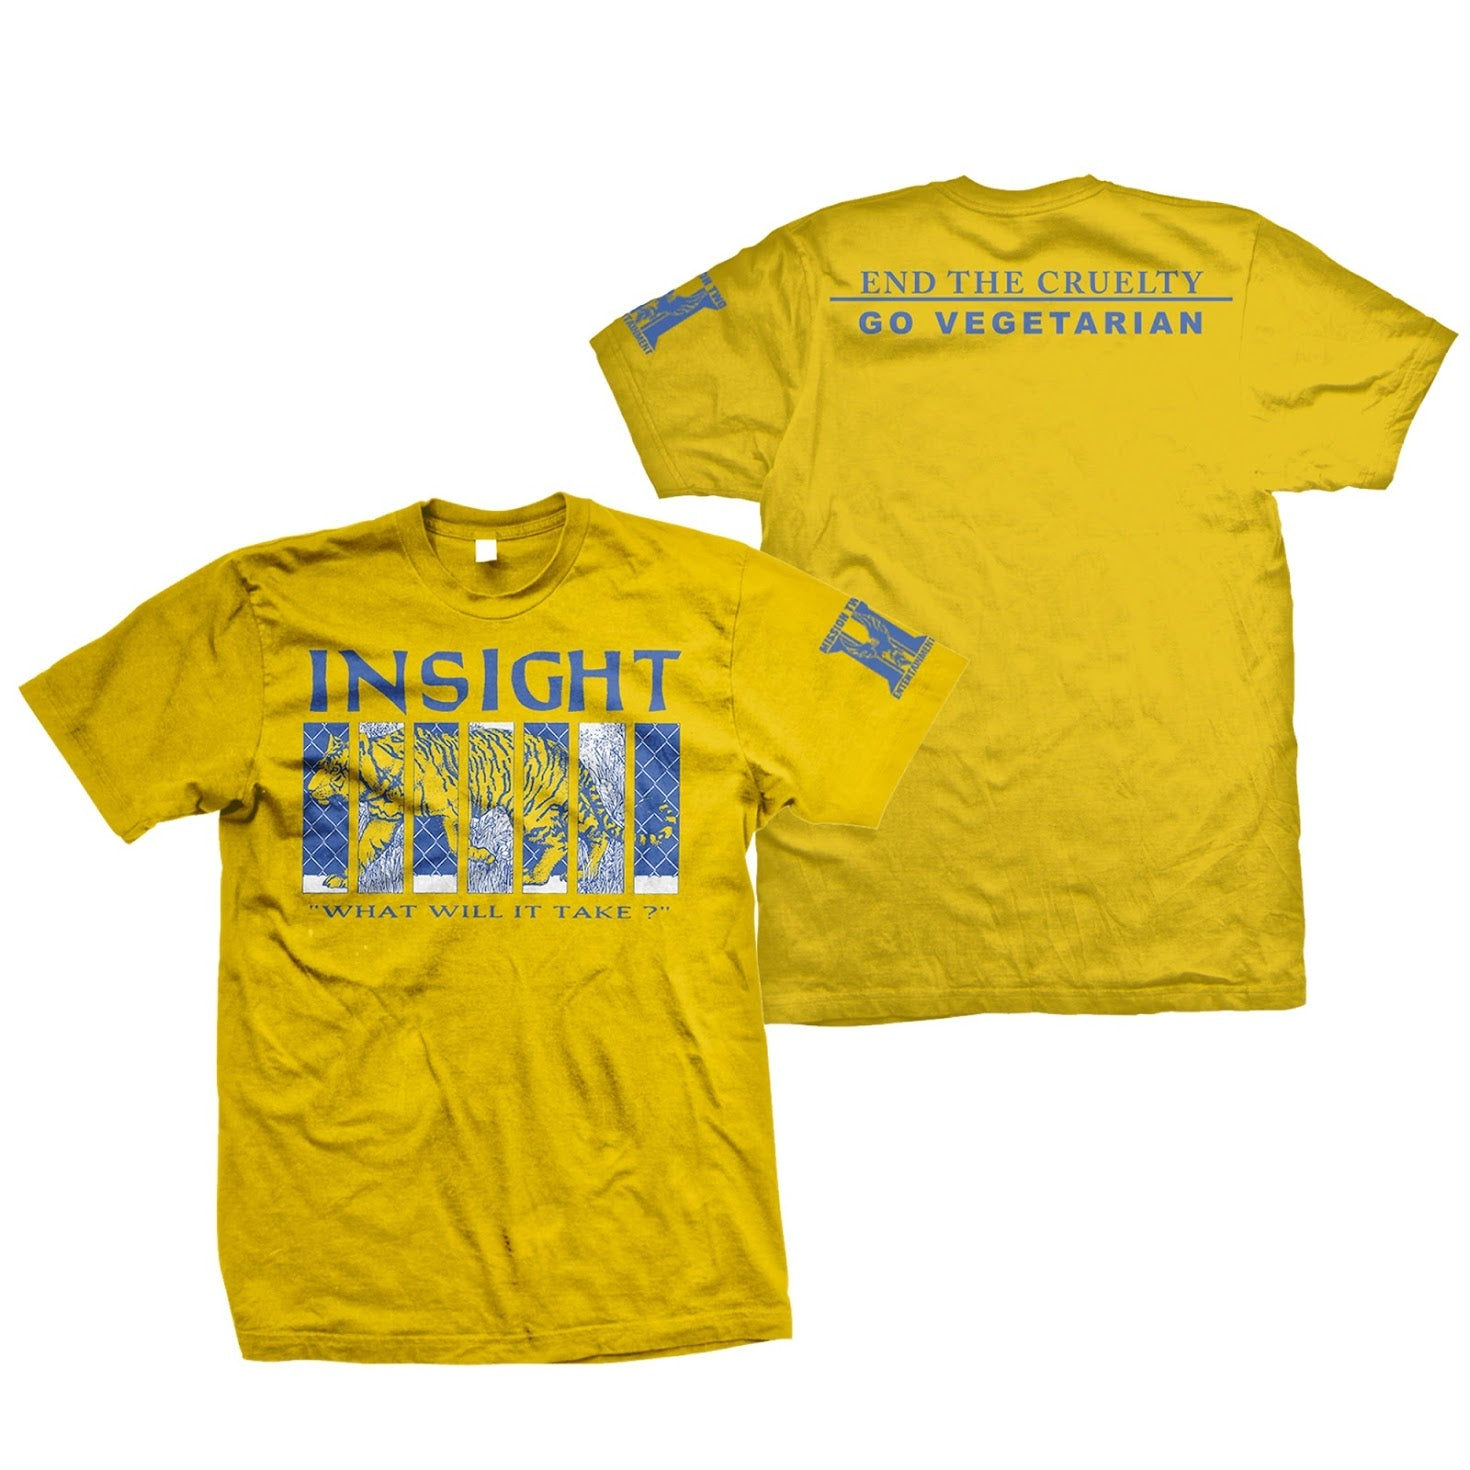 INSIGHT 'End The Cruelty' T-Shirt